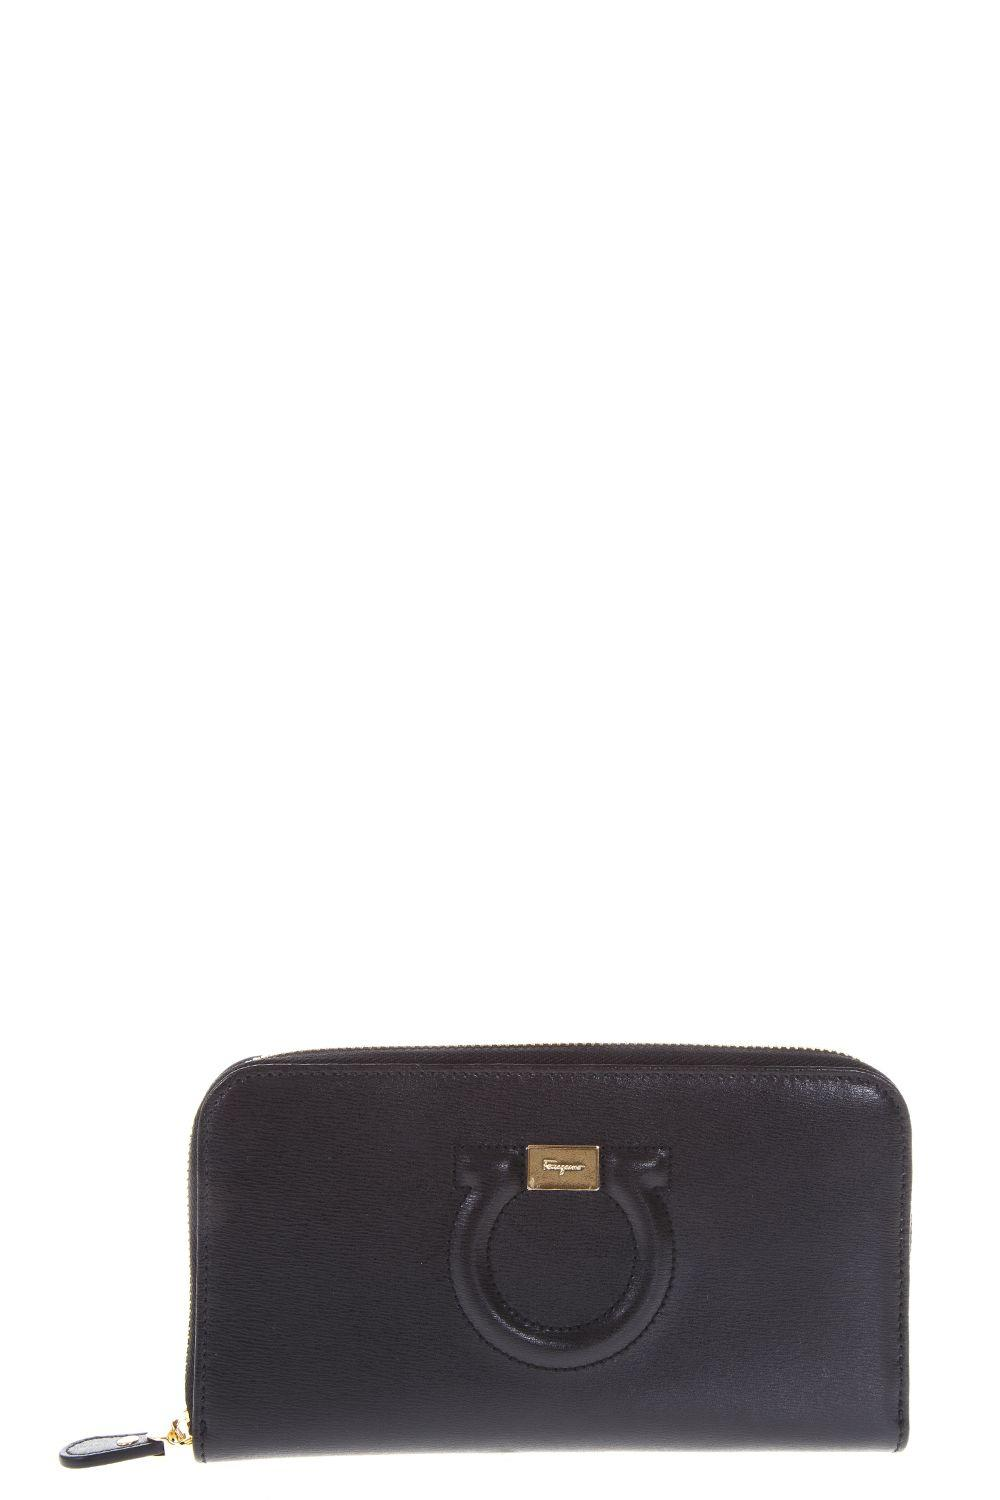 Salvatore Ferragamo Gancio Continental Leather Wallet In Black